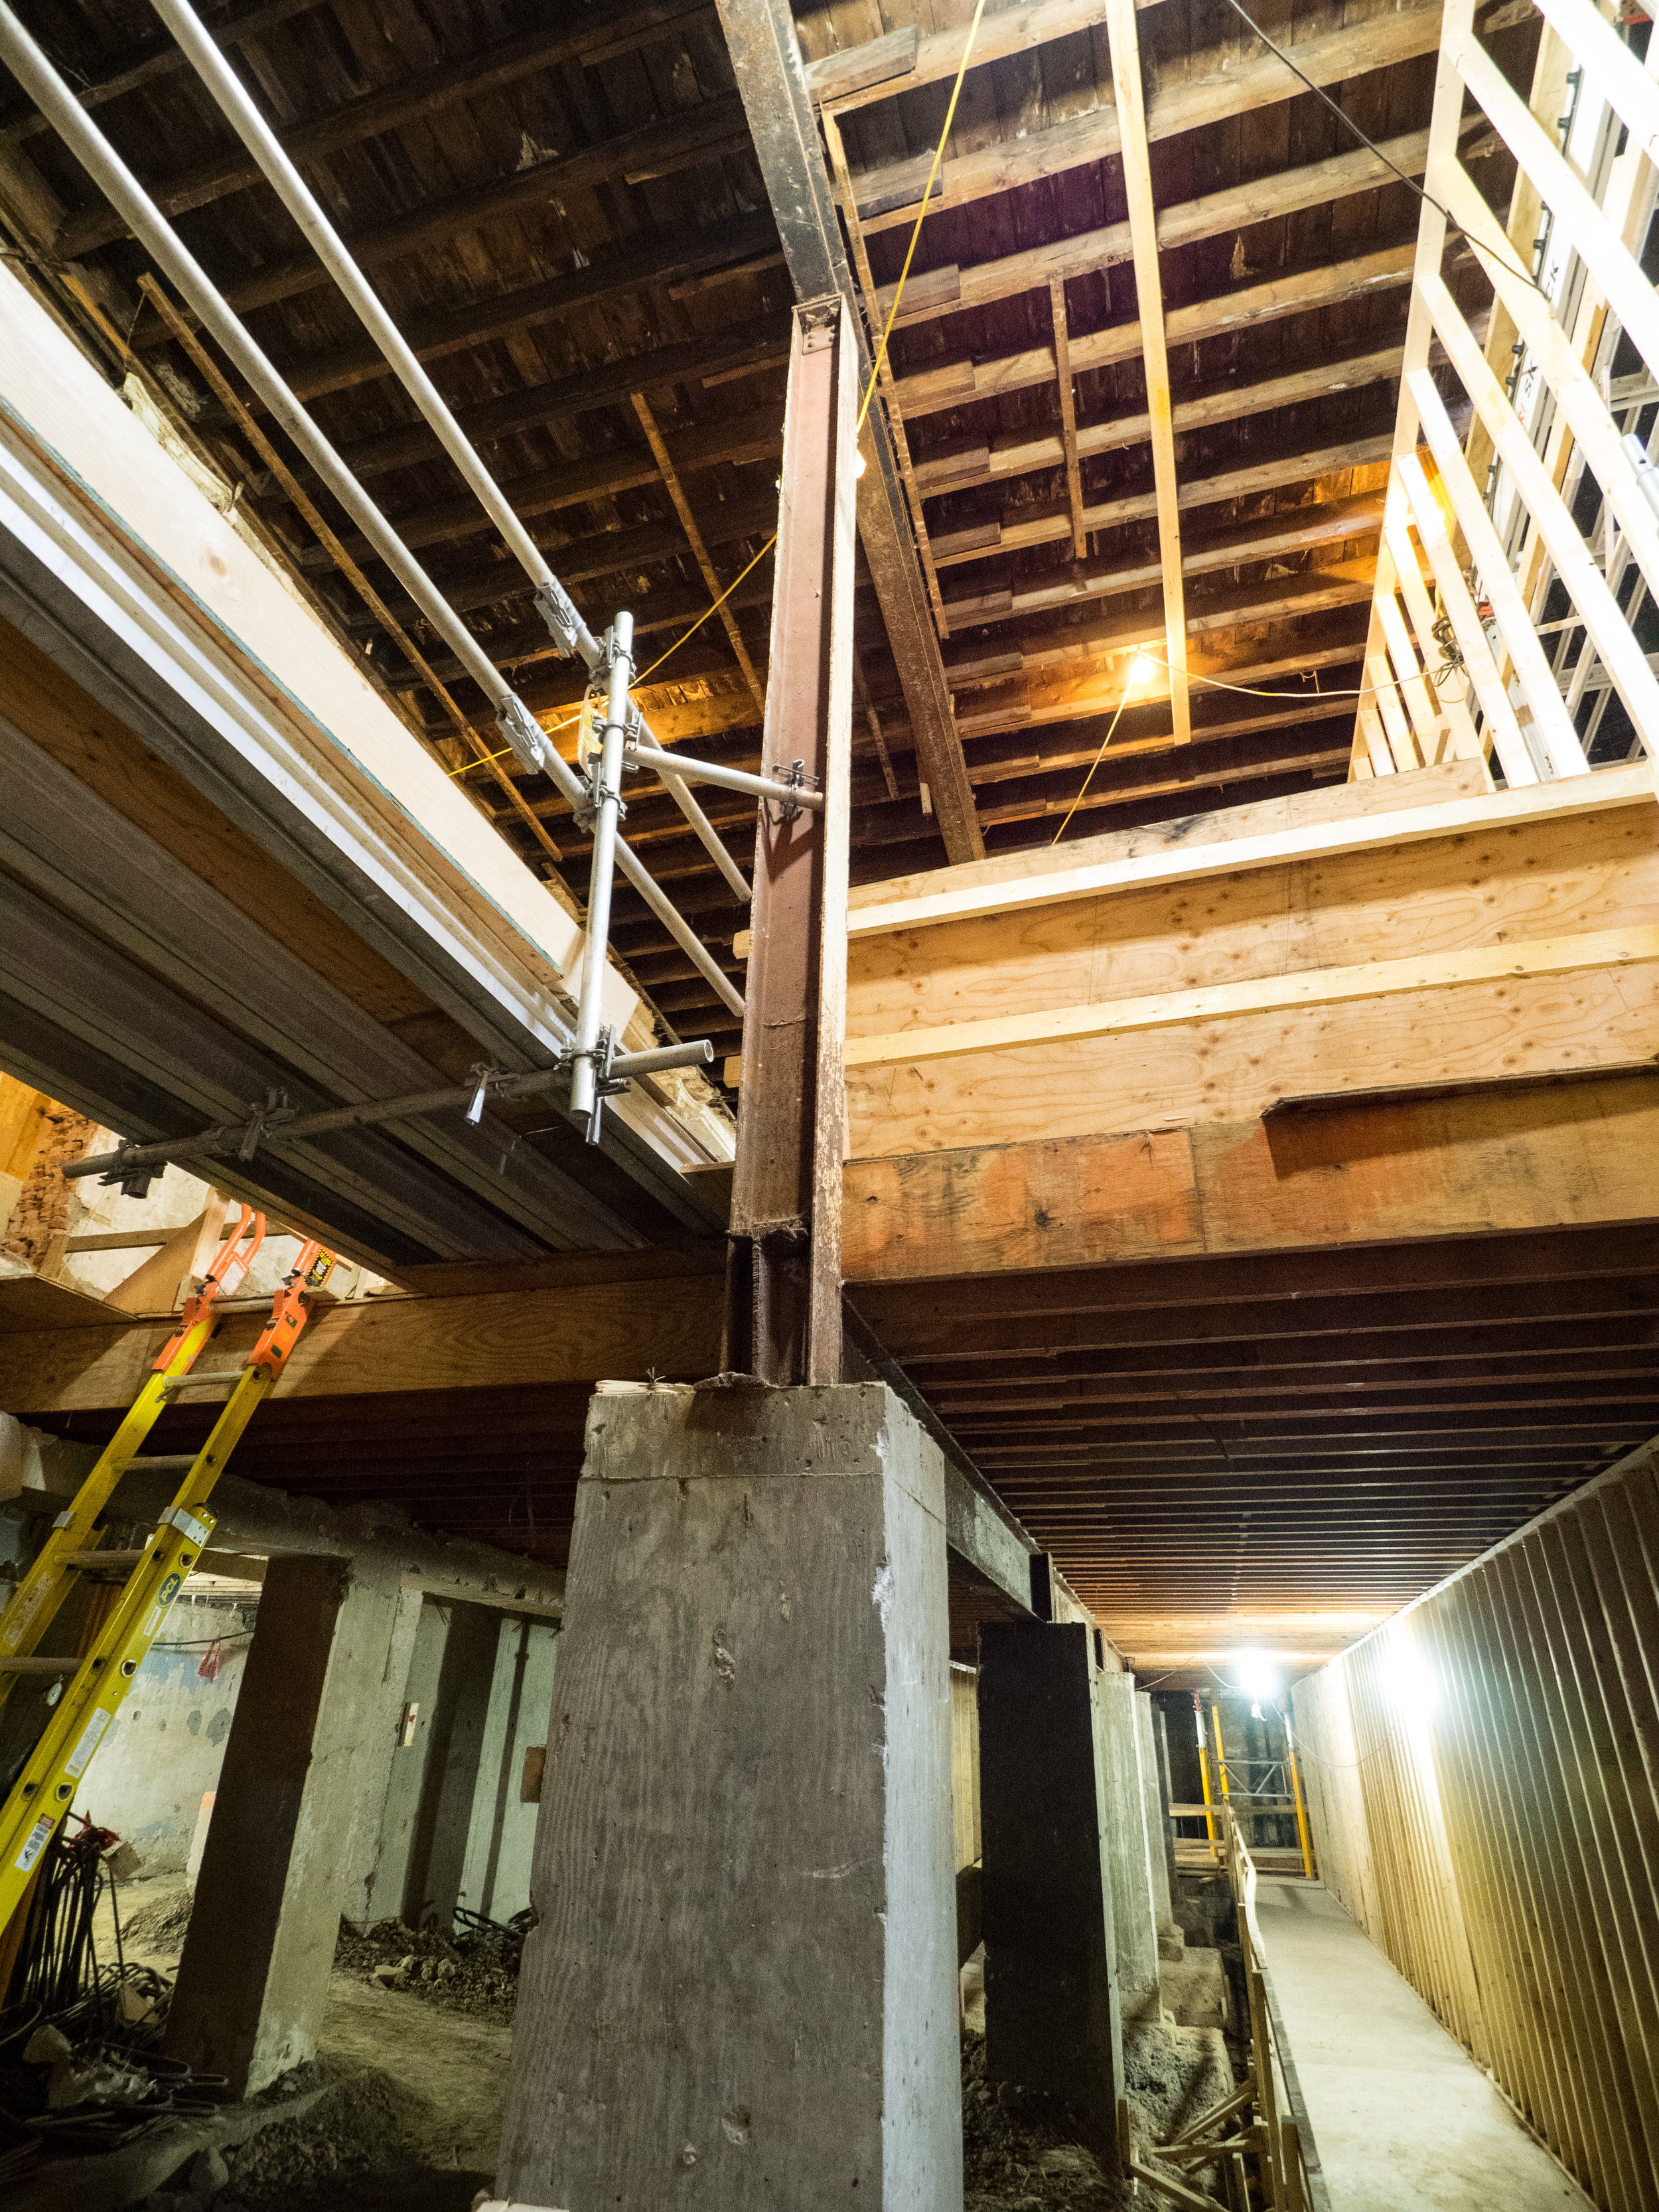 Temporary falsework currently supporting the interior, photo by Dave Sutherland